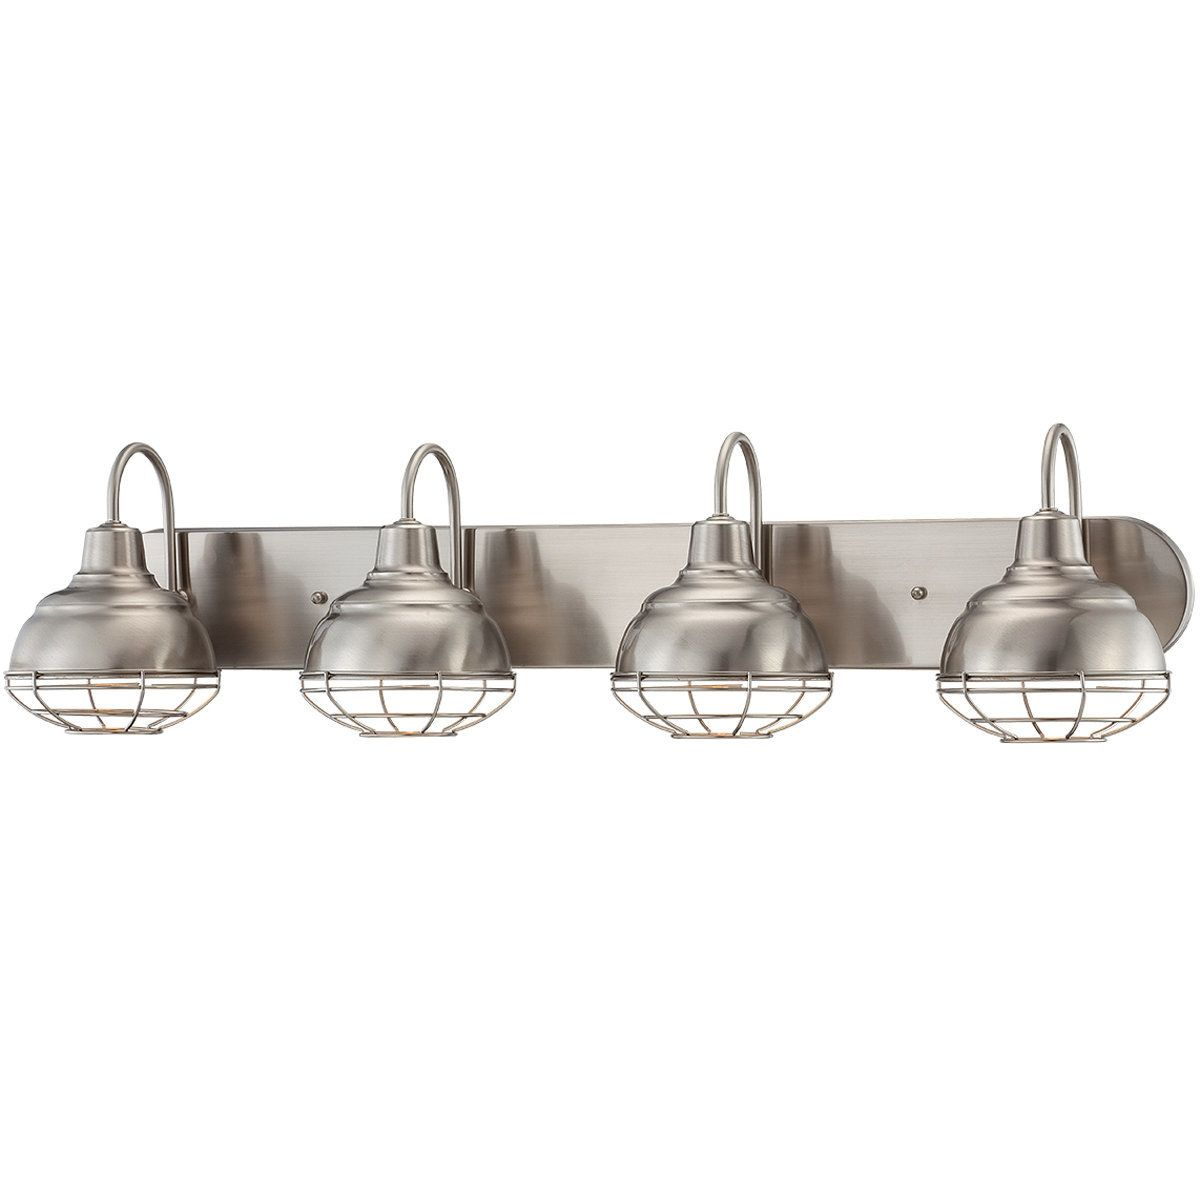 vanity glass of products shades galvanized metal light fixtures industrial teardrop